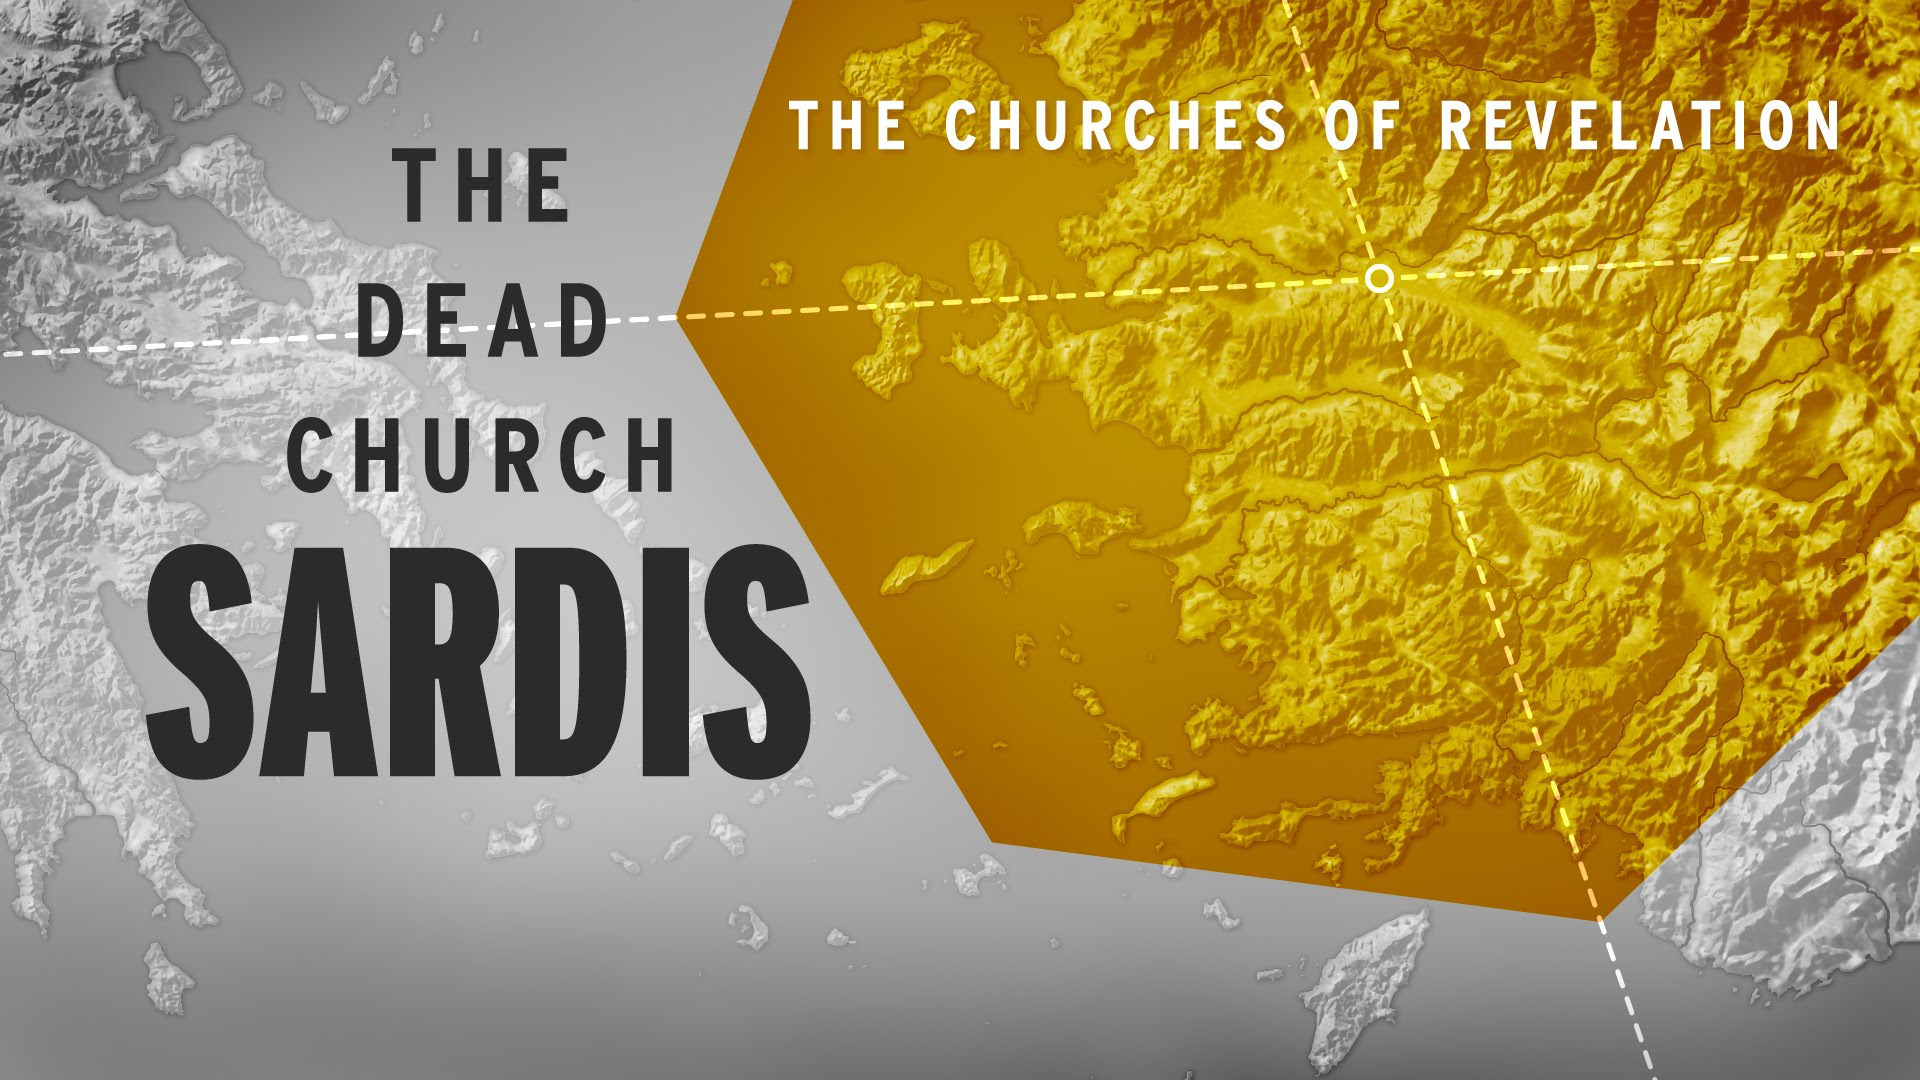 SARDIS - The DEAD Church that has a NAME